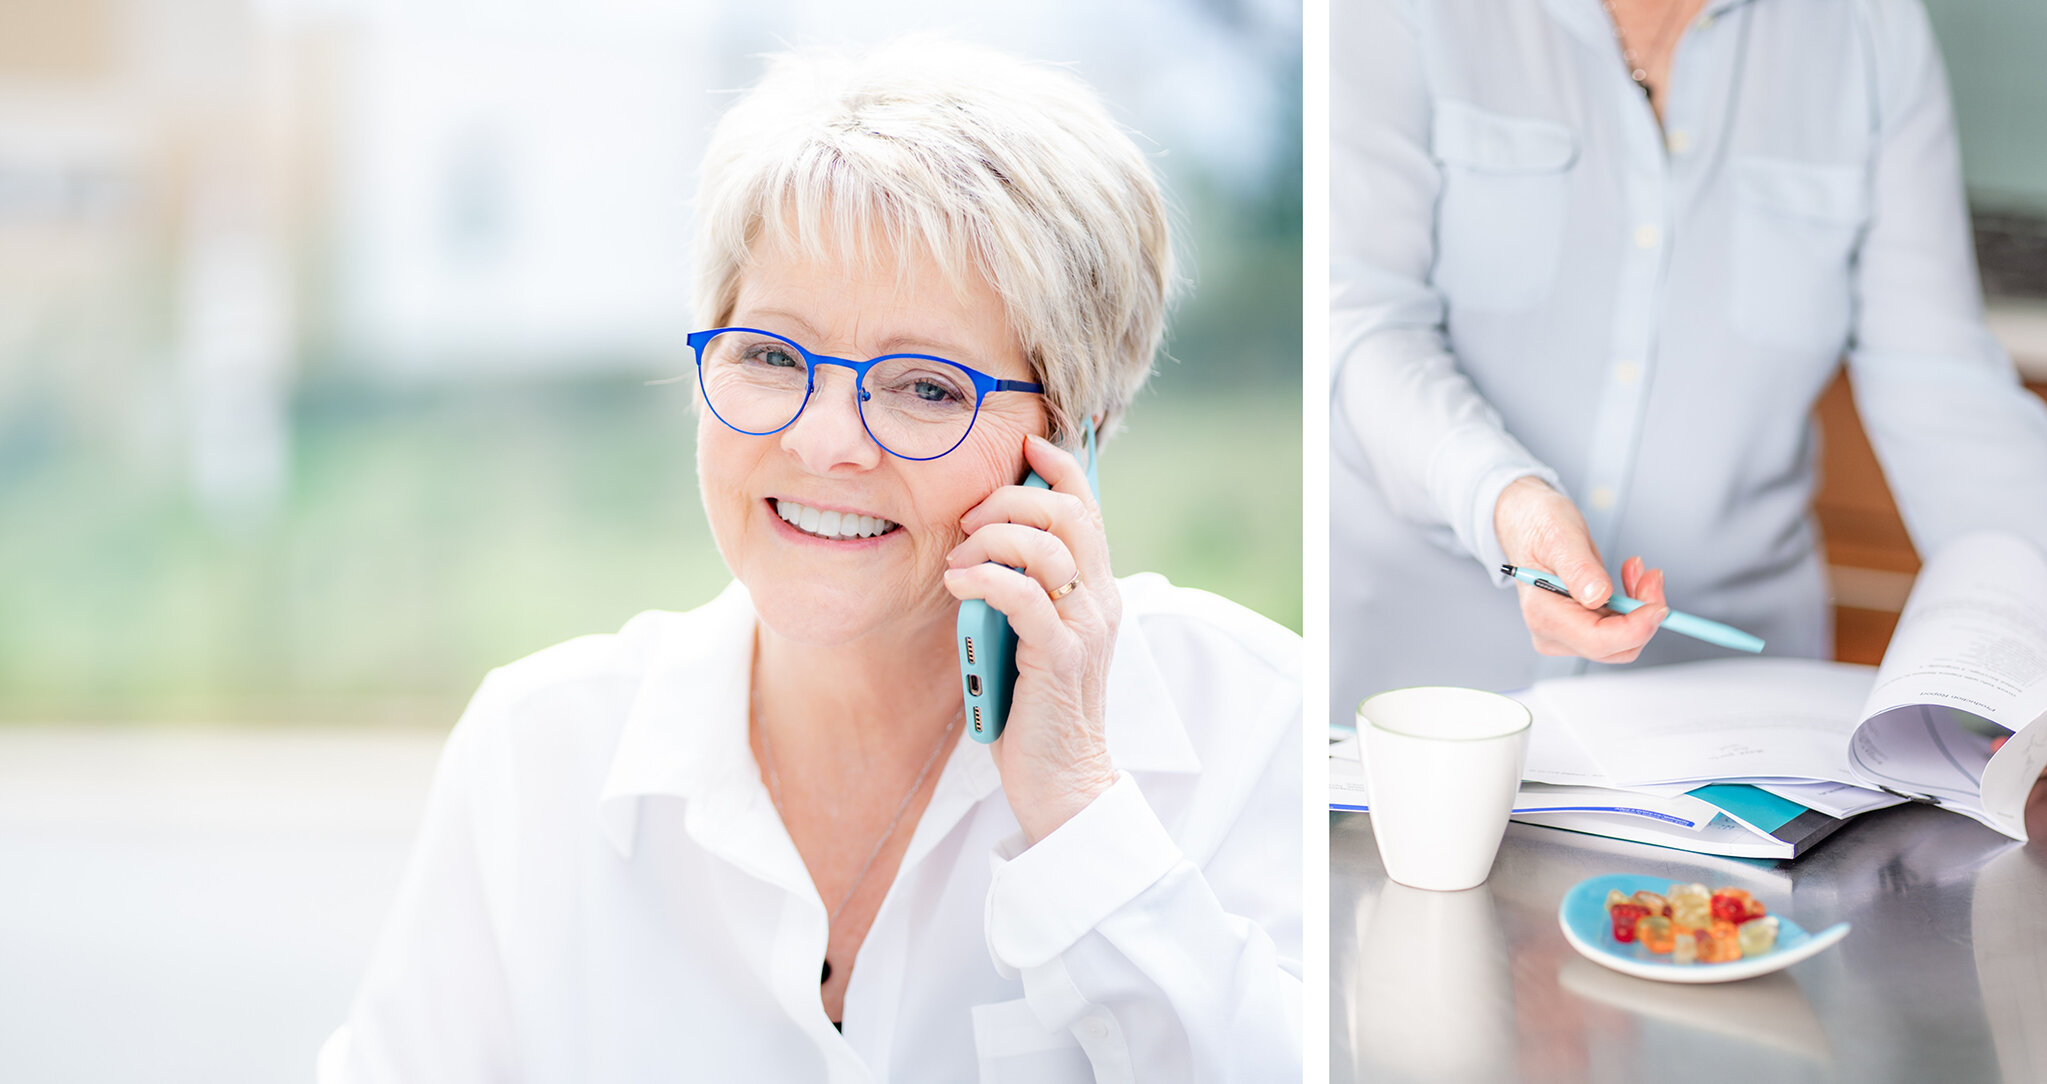 branding photos of small business owner going through planner and talking on cell phone